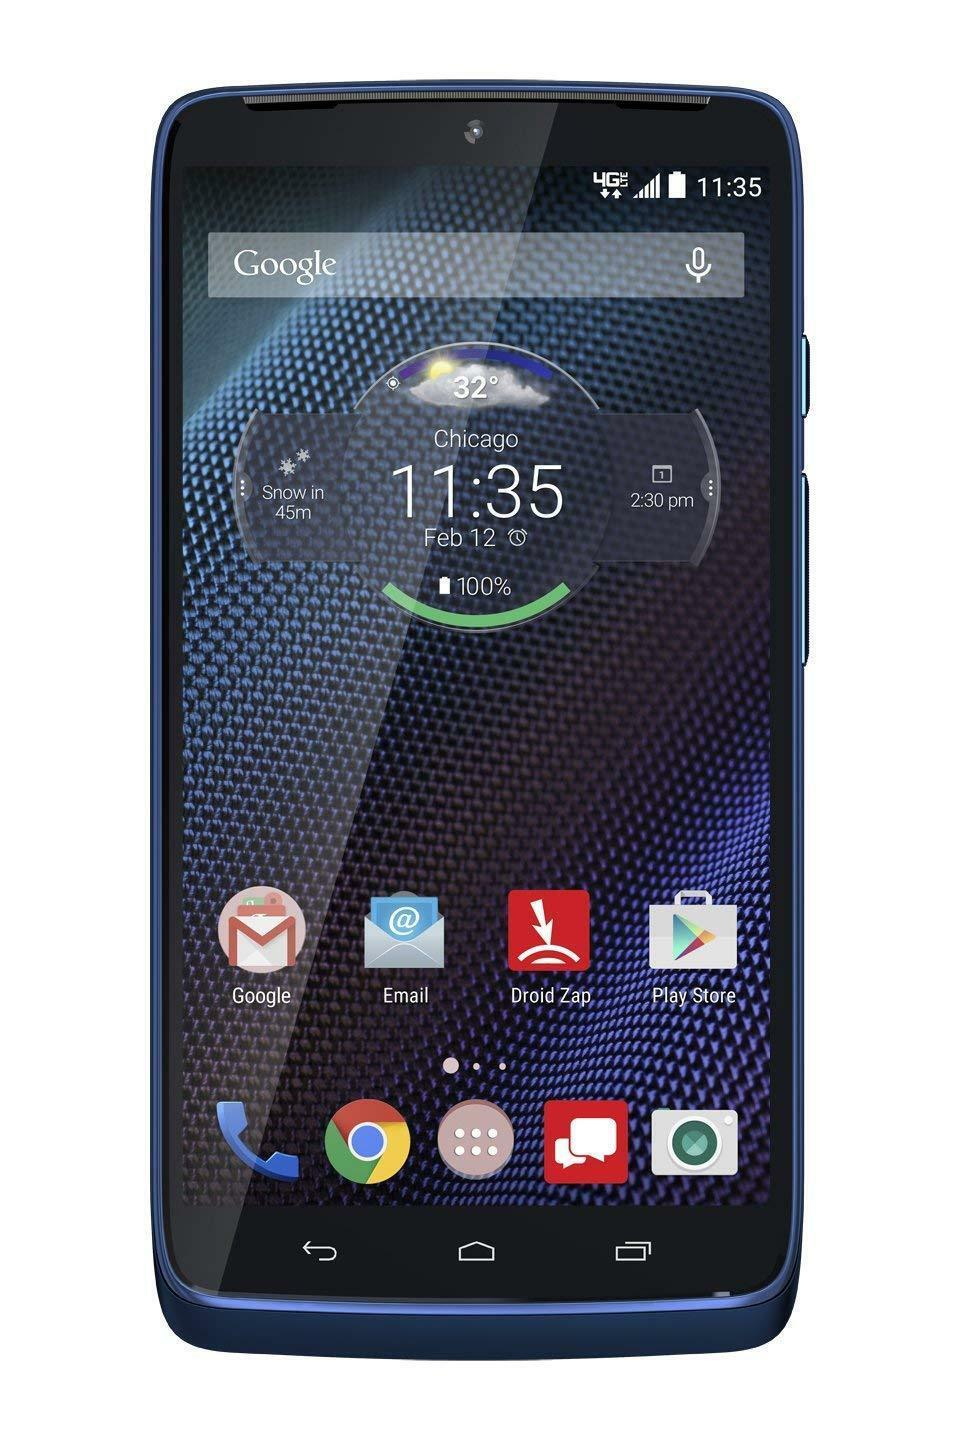 Motorola Droid Turbo 32GB Smartphone XT1254 - Blue Ballistic Nylon (Refurbished)